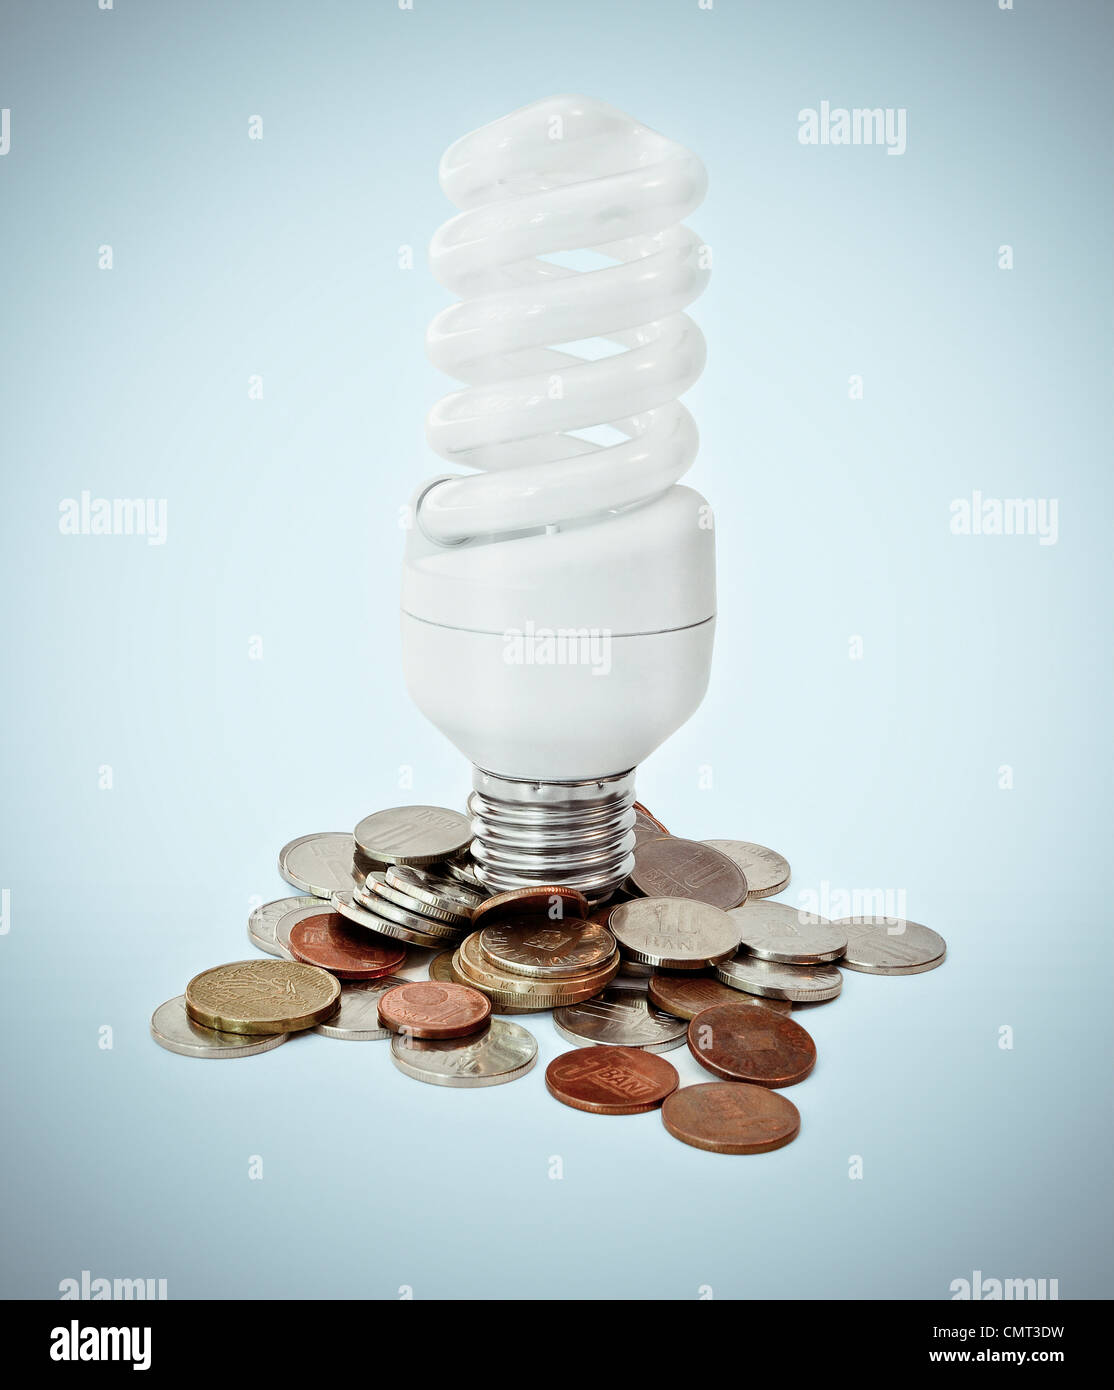 Eco lighbulb concept and money savings on energy - Stock Image